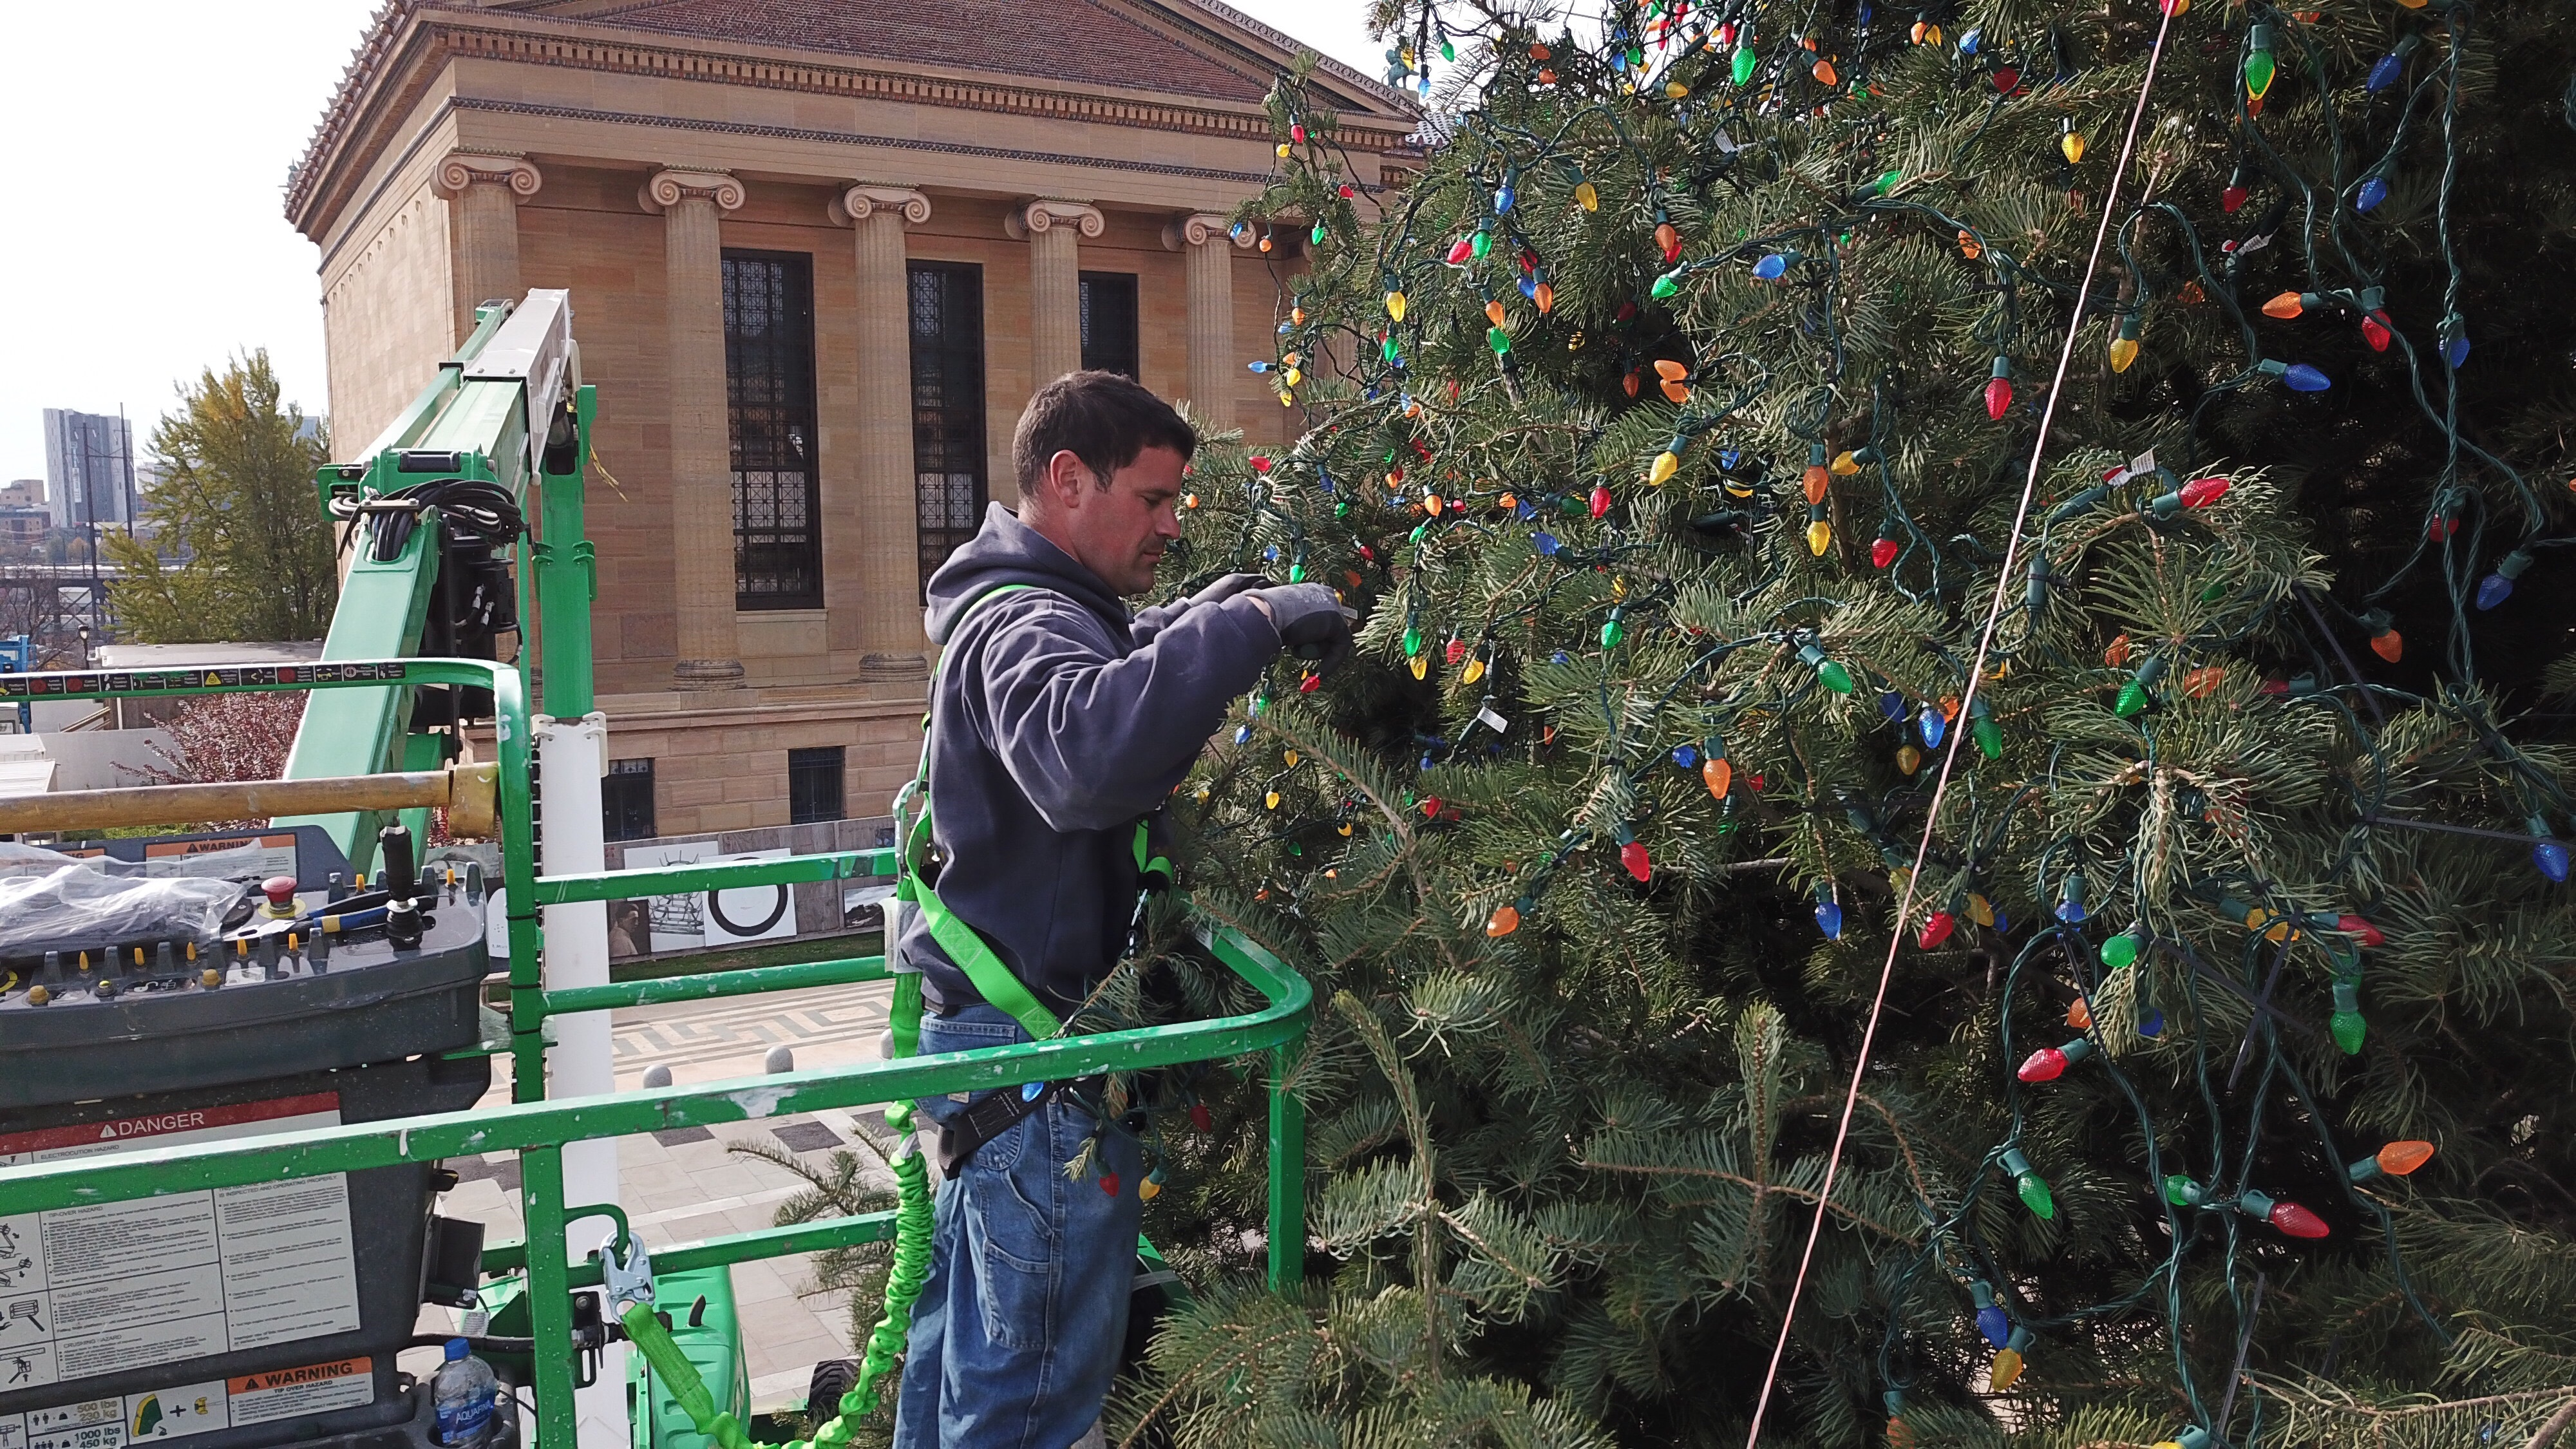 Michael Visco of Local 98 and two other workers attach Colored lights to a Christmas tree atop the Art Museum steps Monday November 12, 2018.